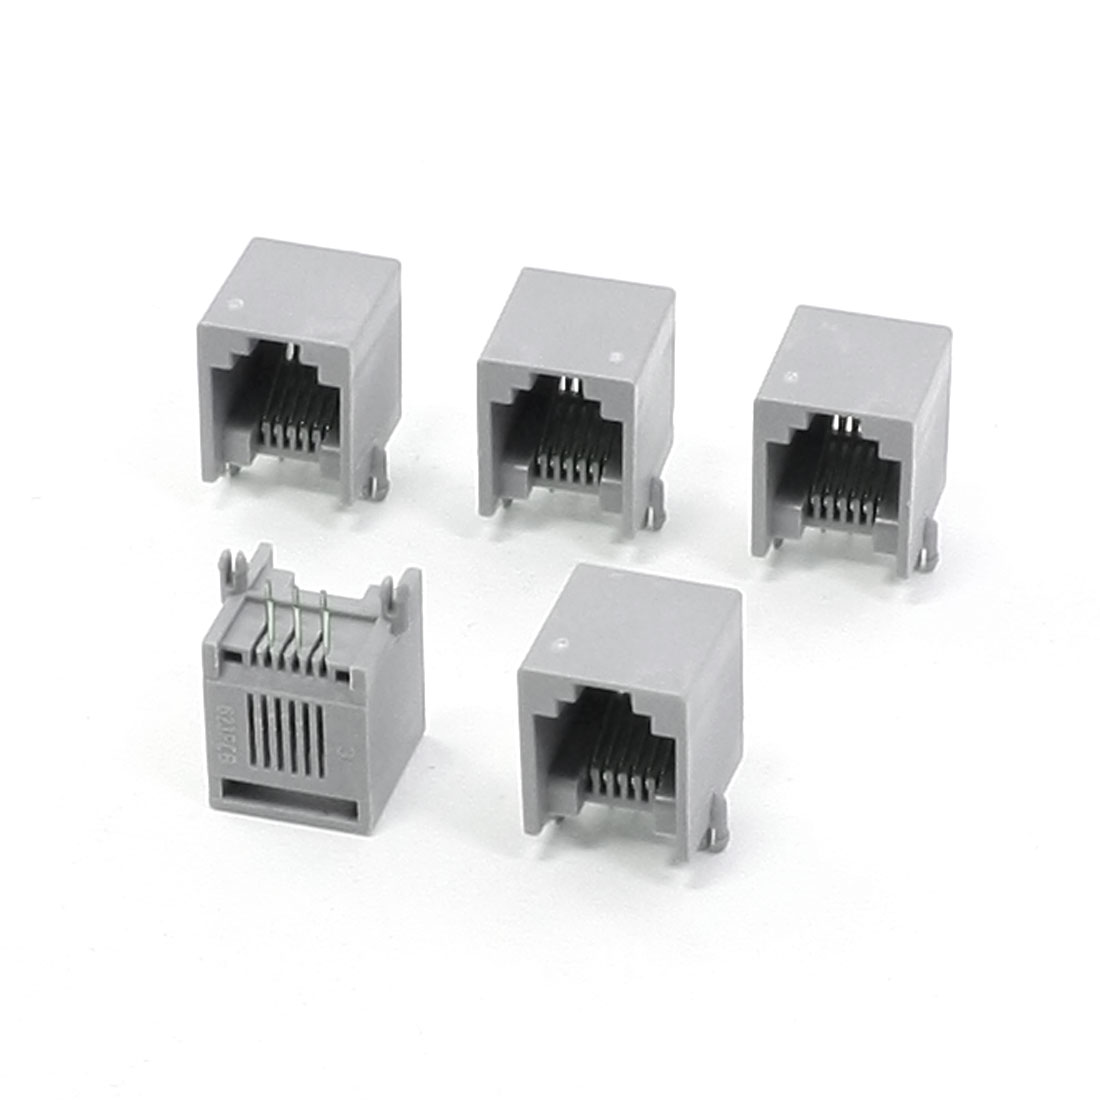 RJ12 6P6C Side Entry Modular Network PCB Jacks Connectors Gray 5 Pcs